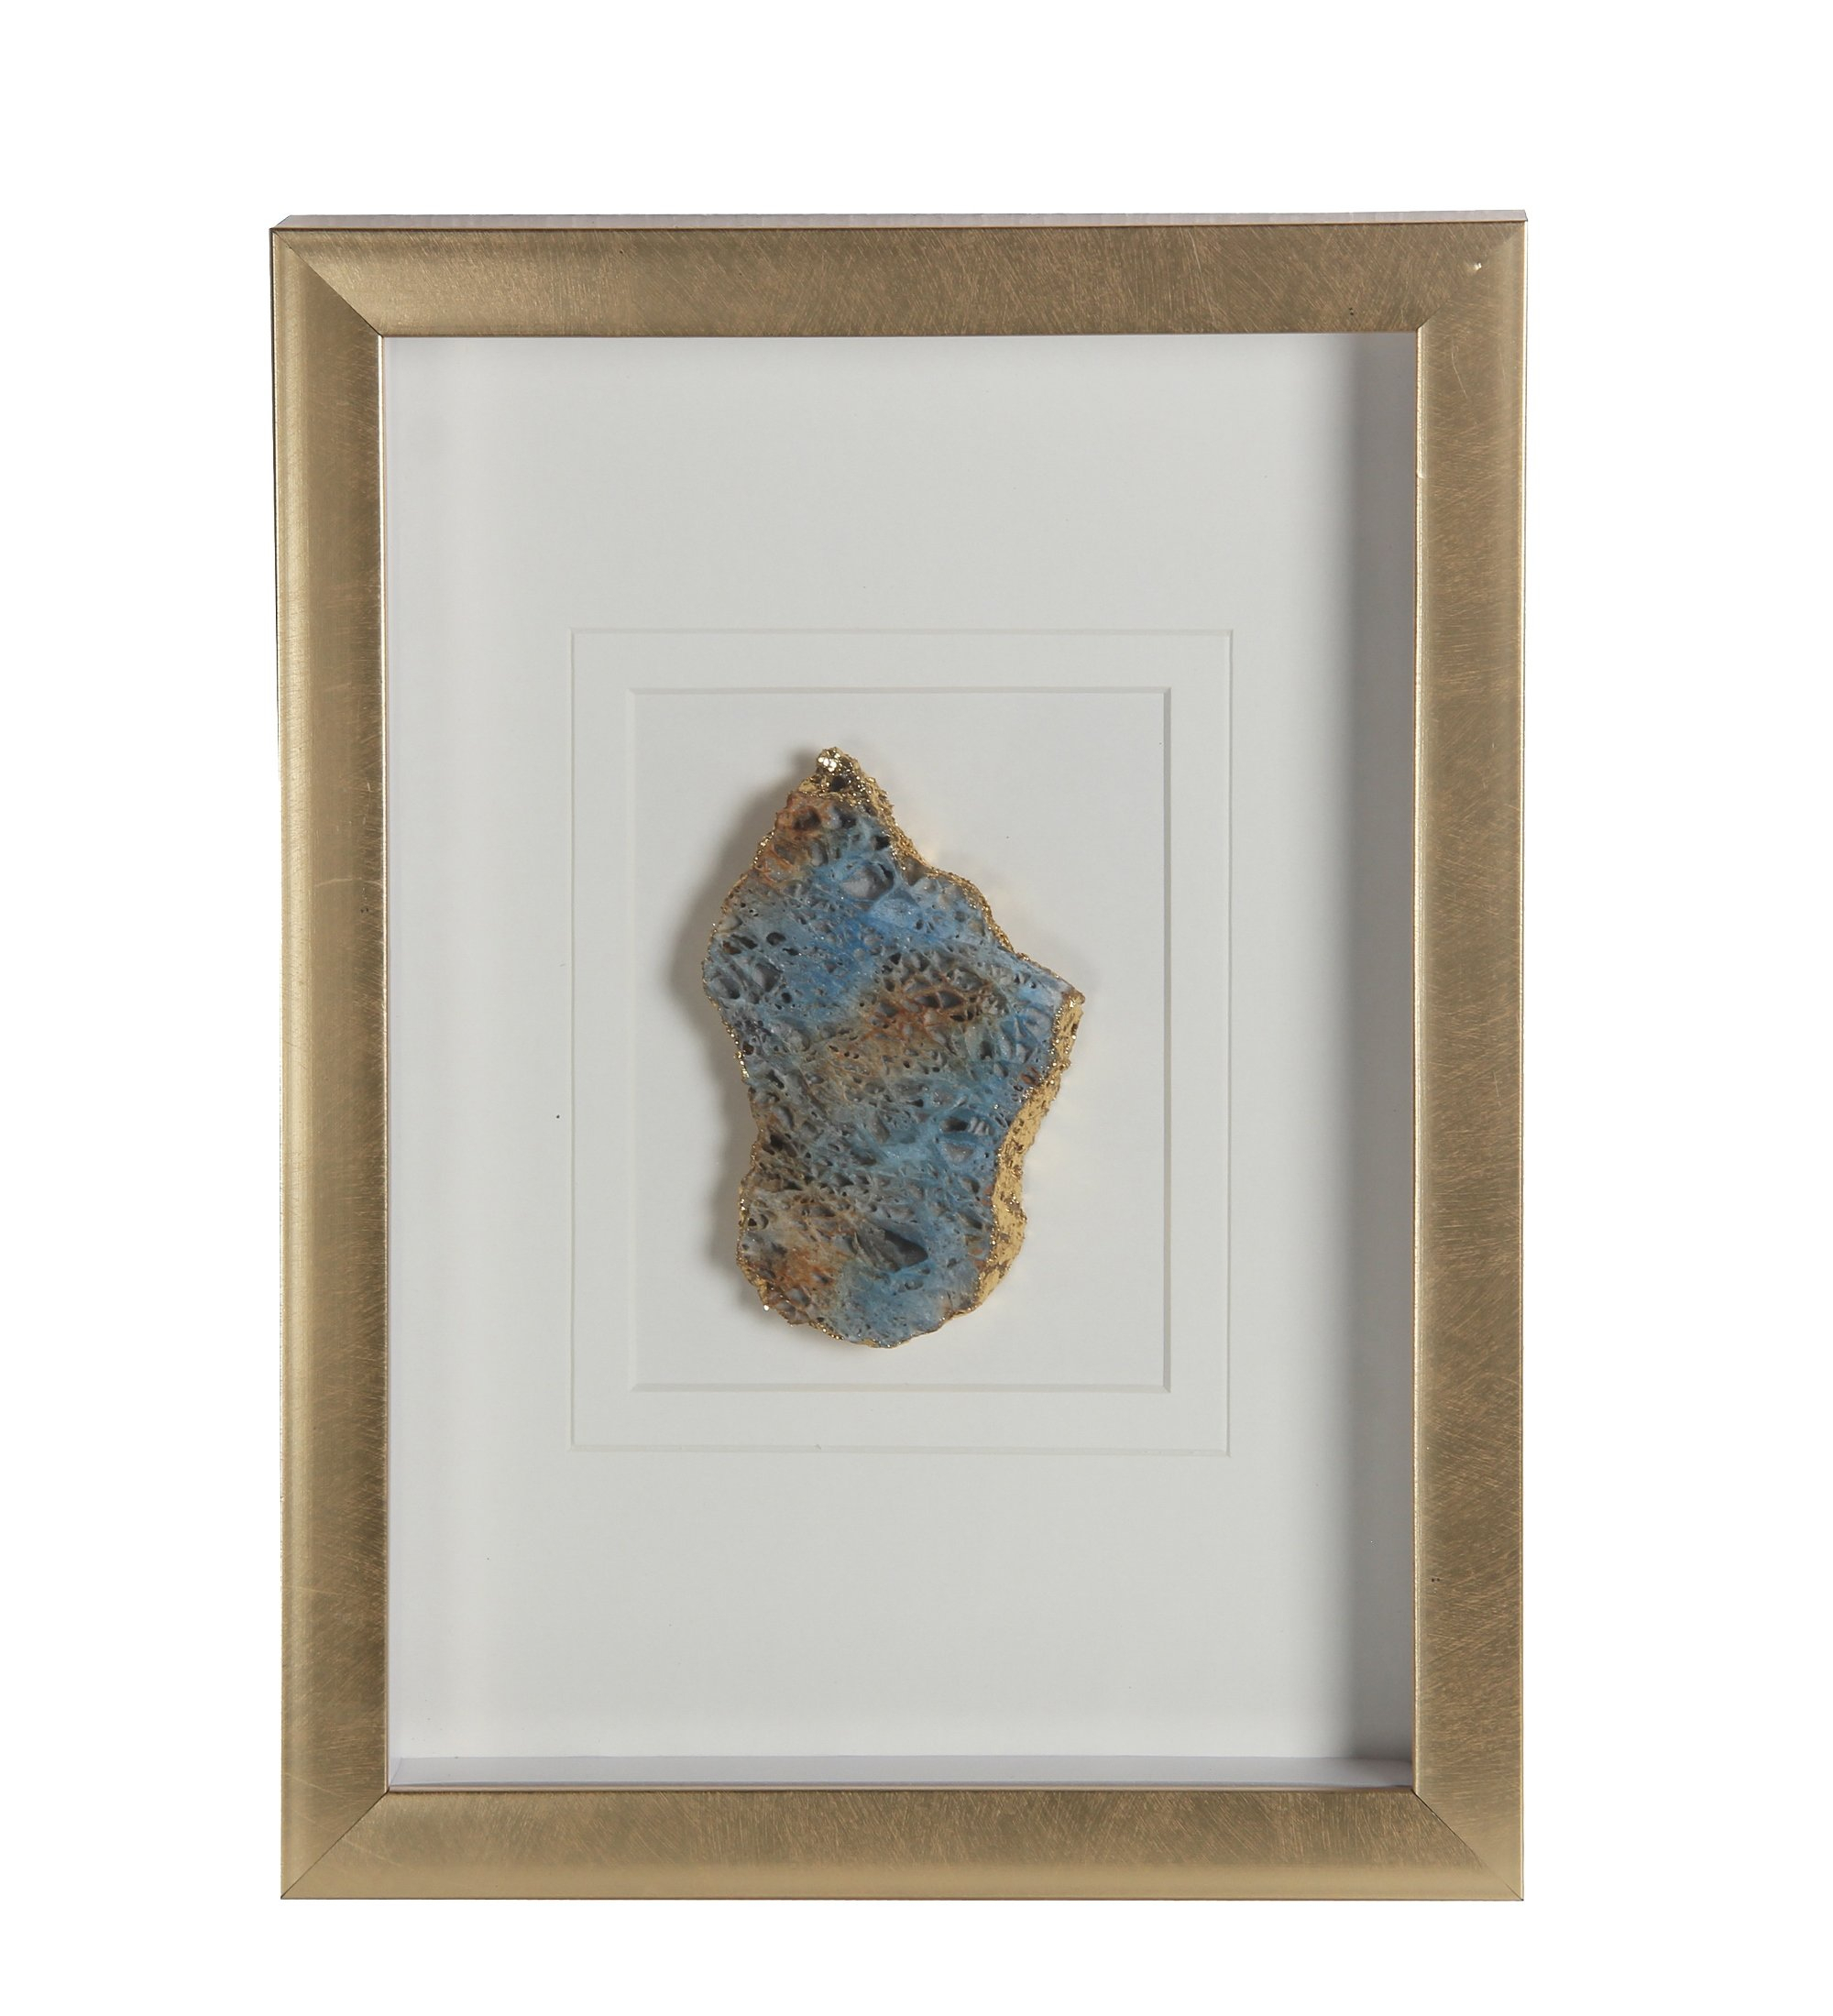 Shadow Box Wall Décor Intended For 1 Piece Ortie Panel Wall Decor (View 27 of 30)